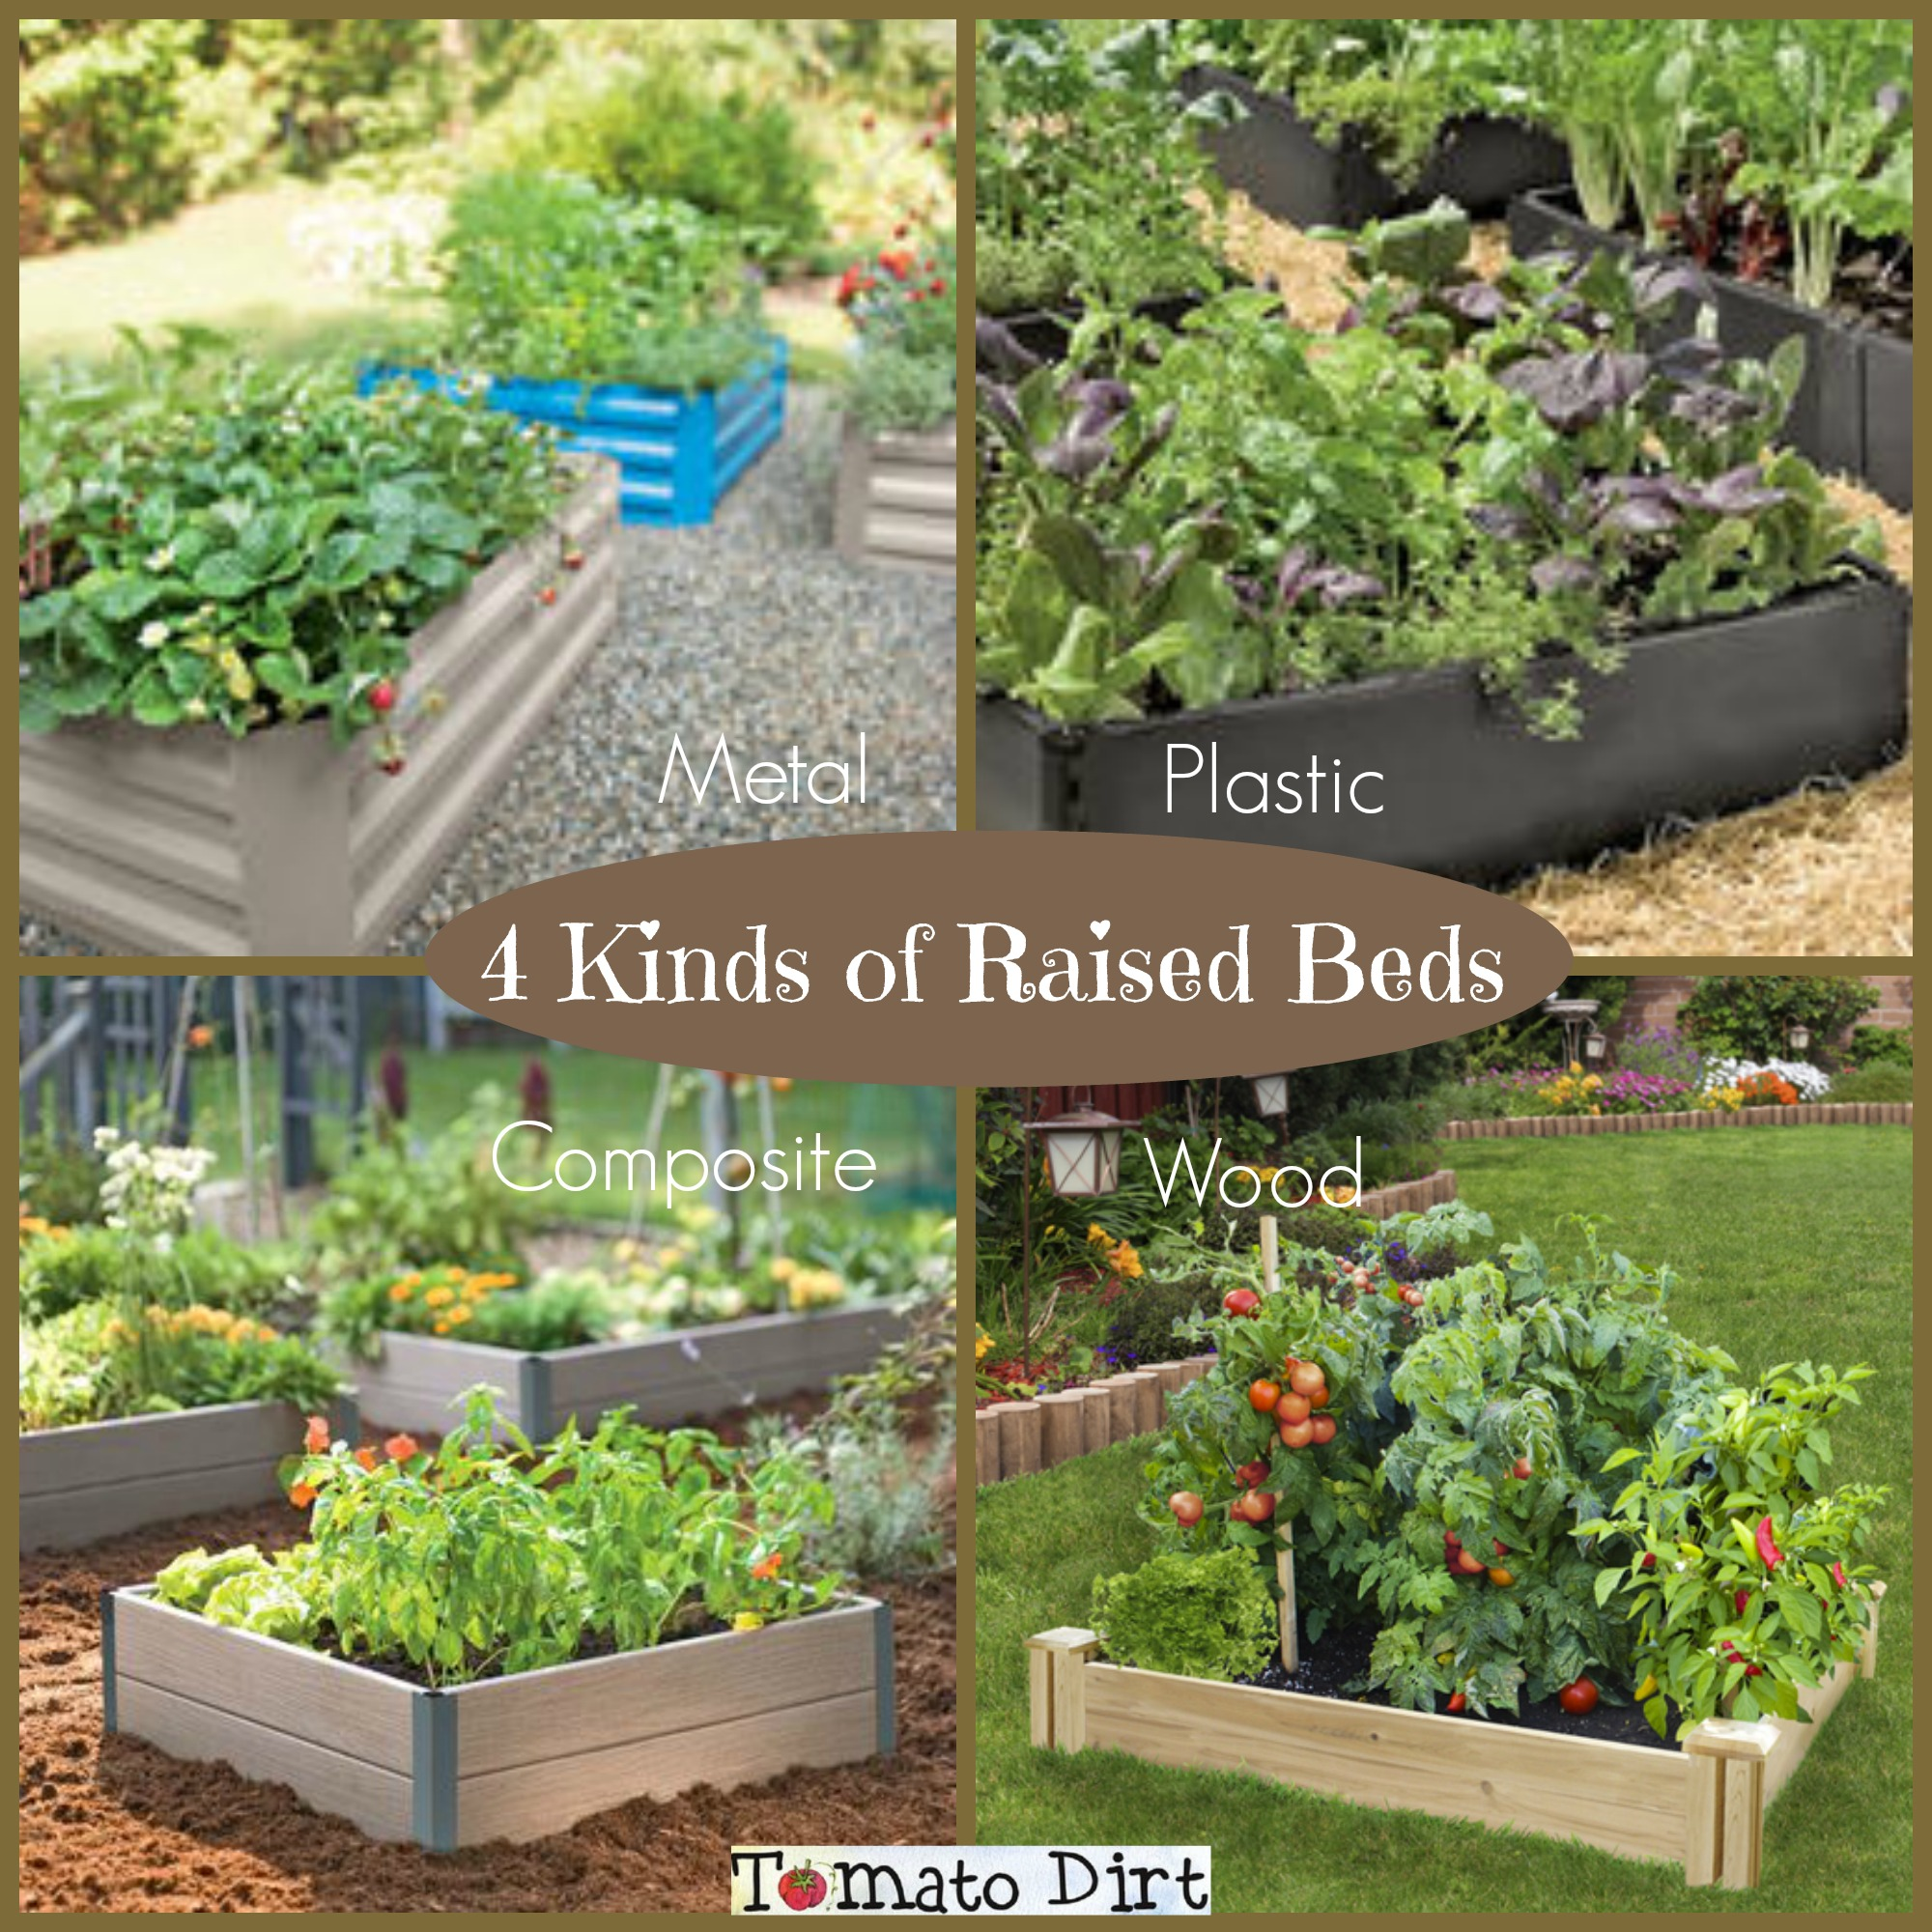 4 kinds of raised garden beds for growing tomatoes from Tomato Dirt